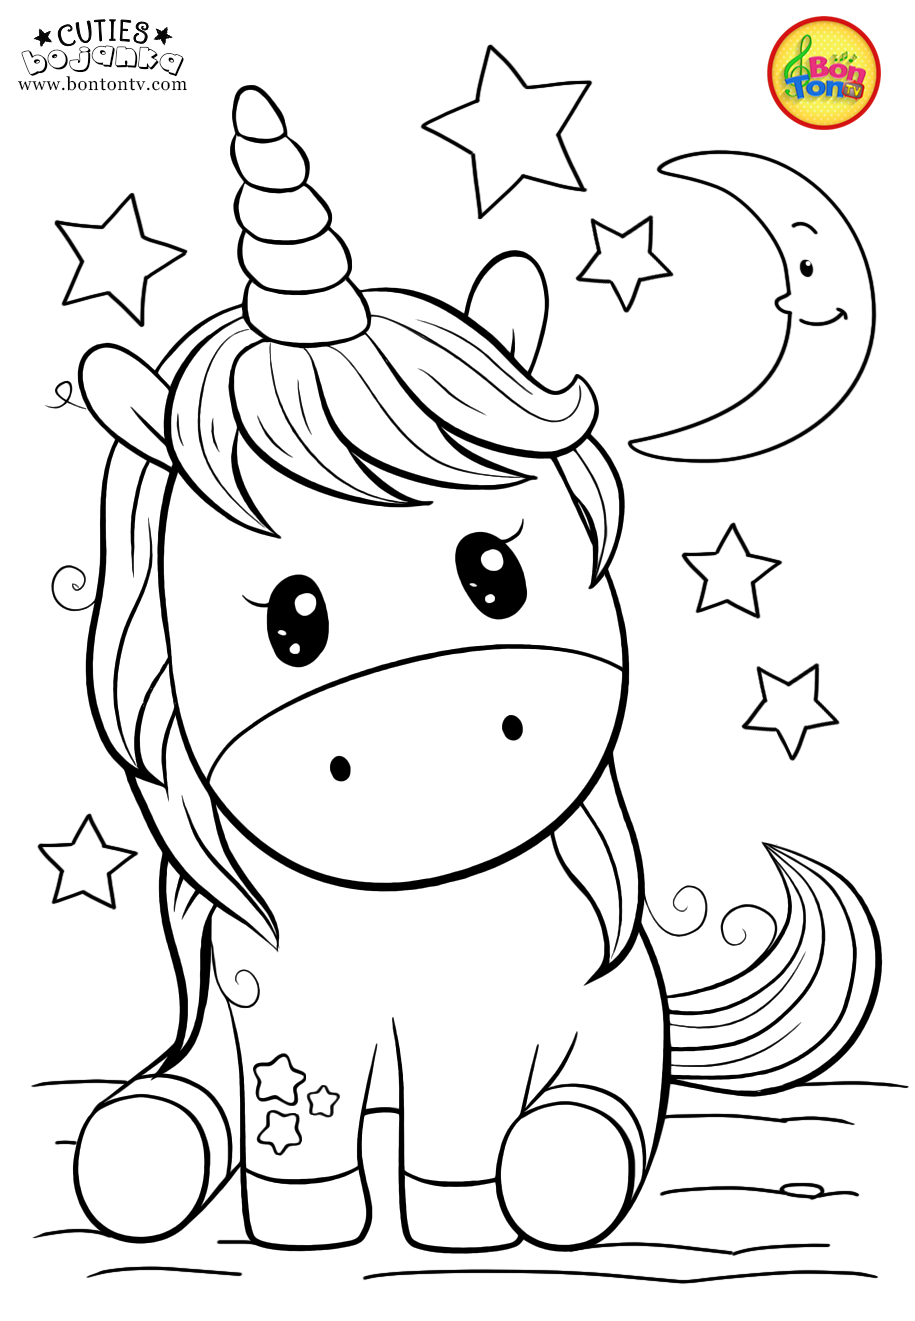 Terrific Pictures Kids Coloring Pages Ideas The Stunning Point Regarding Coloring Is It Can In 2021 Unicorn Coloring Pages Animal Coloring Pages Spring Coloring Pages